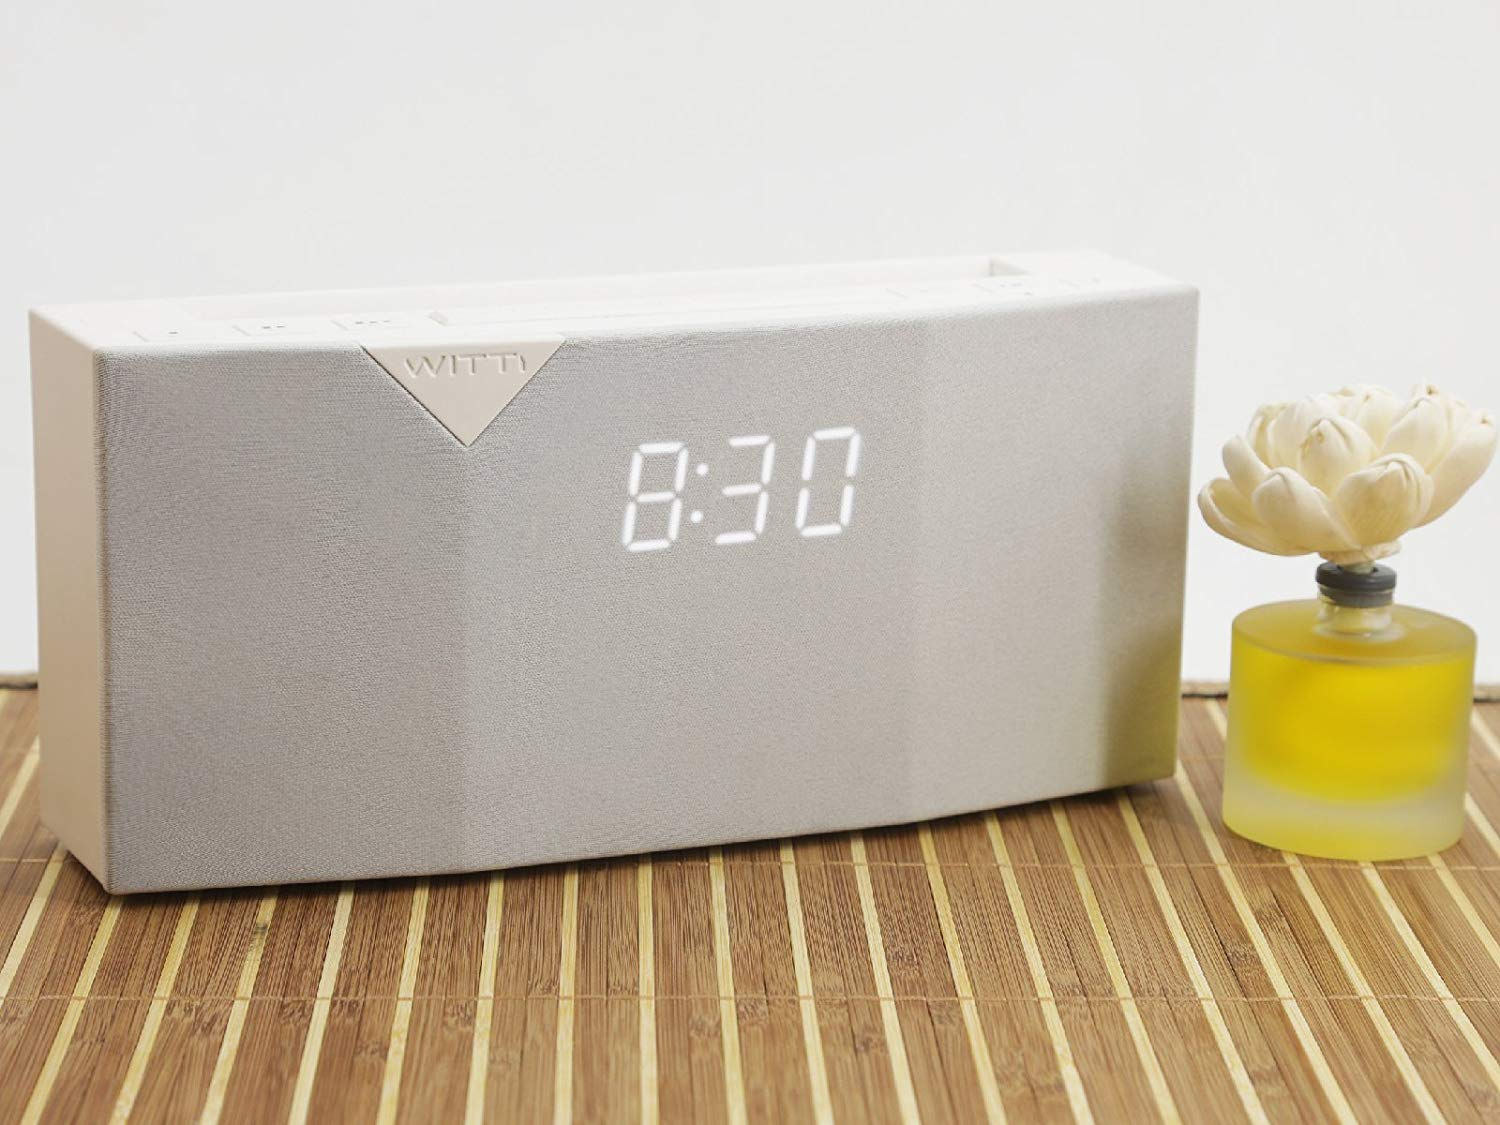 WITTI BEDDI Smart Radio Alarm Clock review